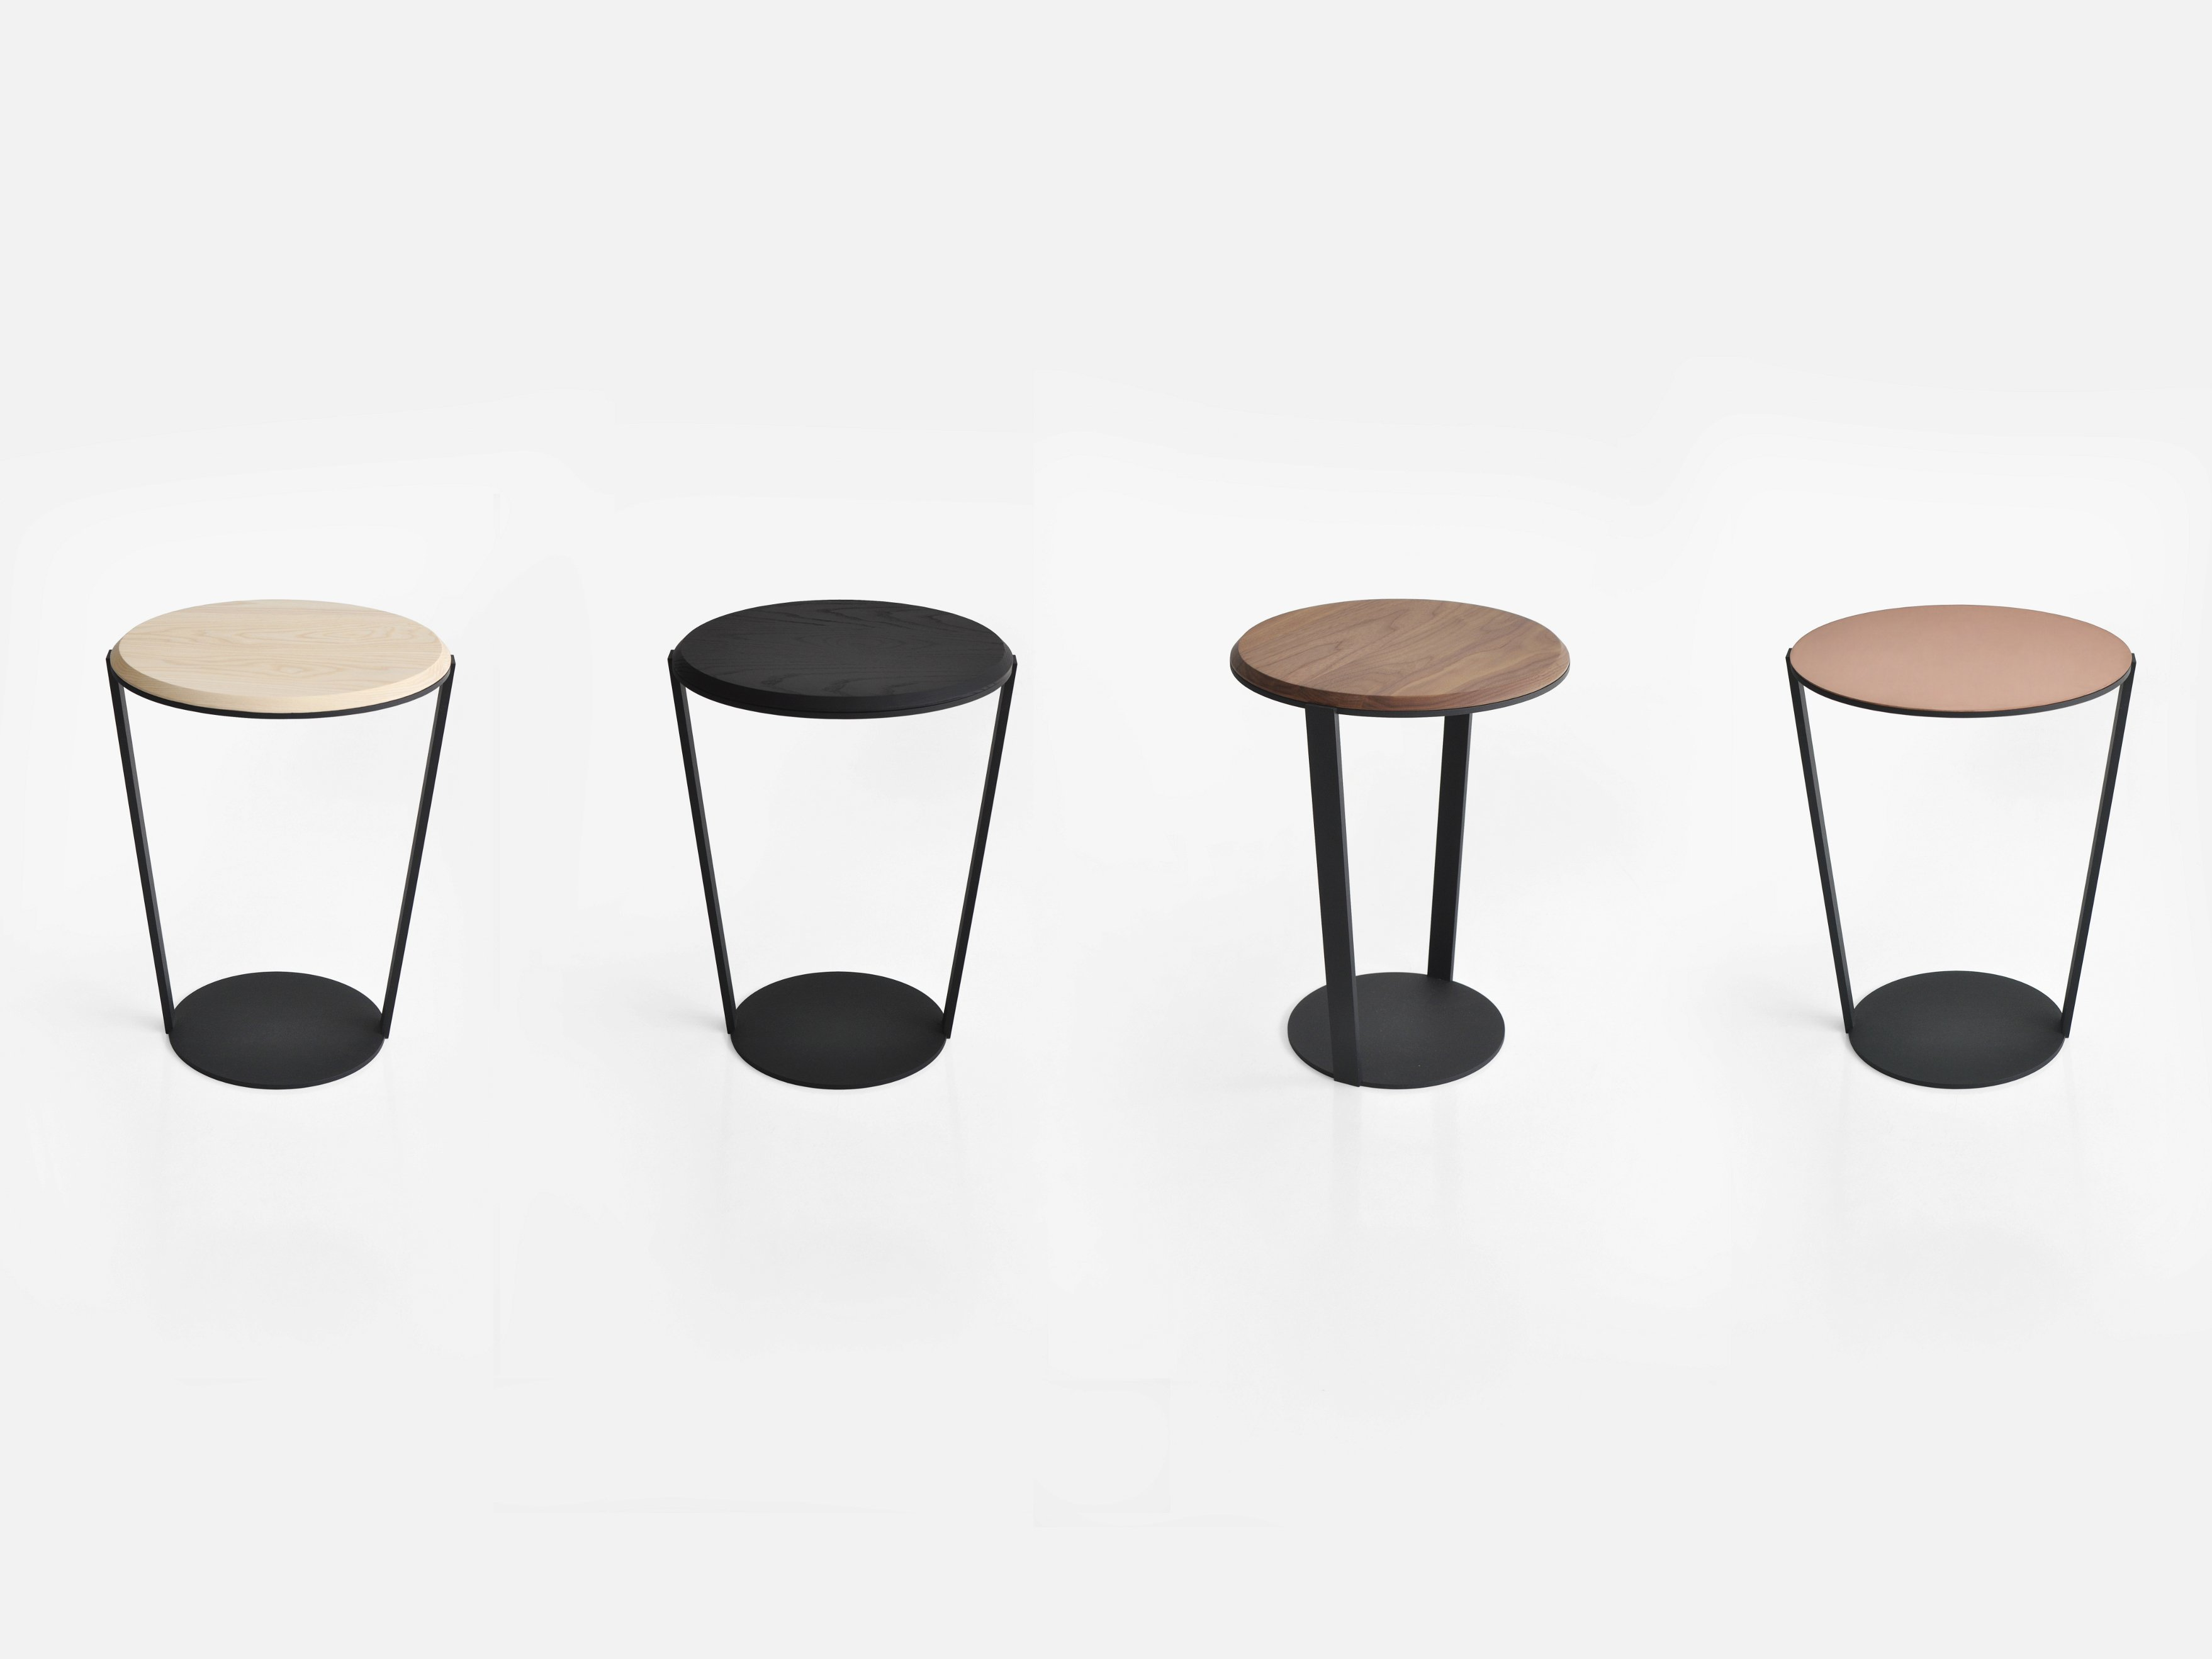 for christmas choose design as a gift archiproducts - Table D Appoint Ronde